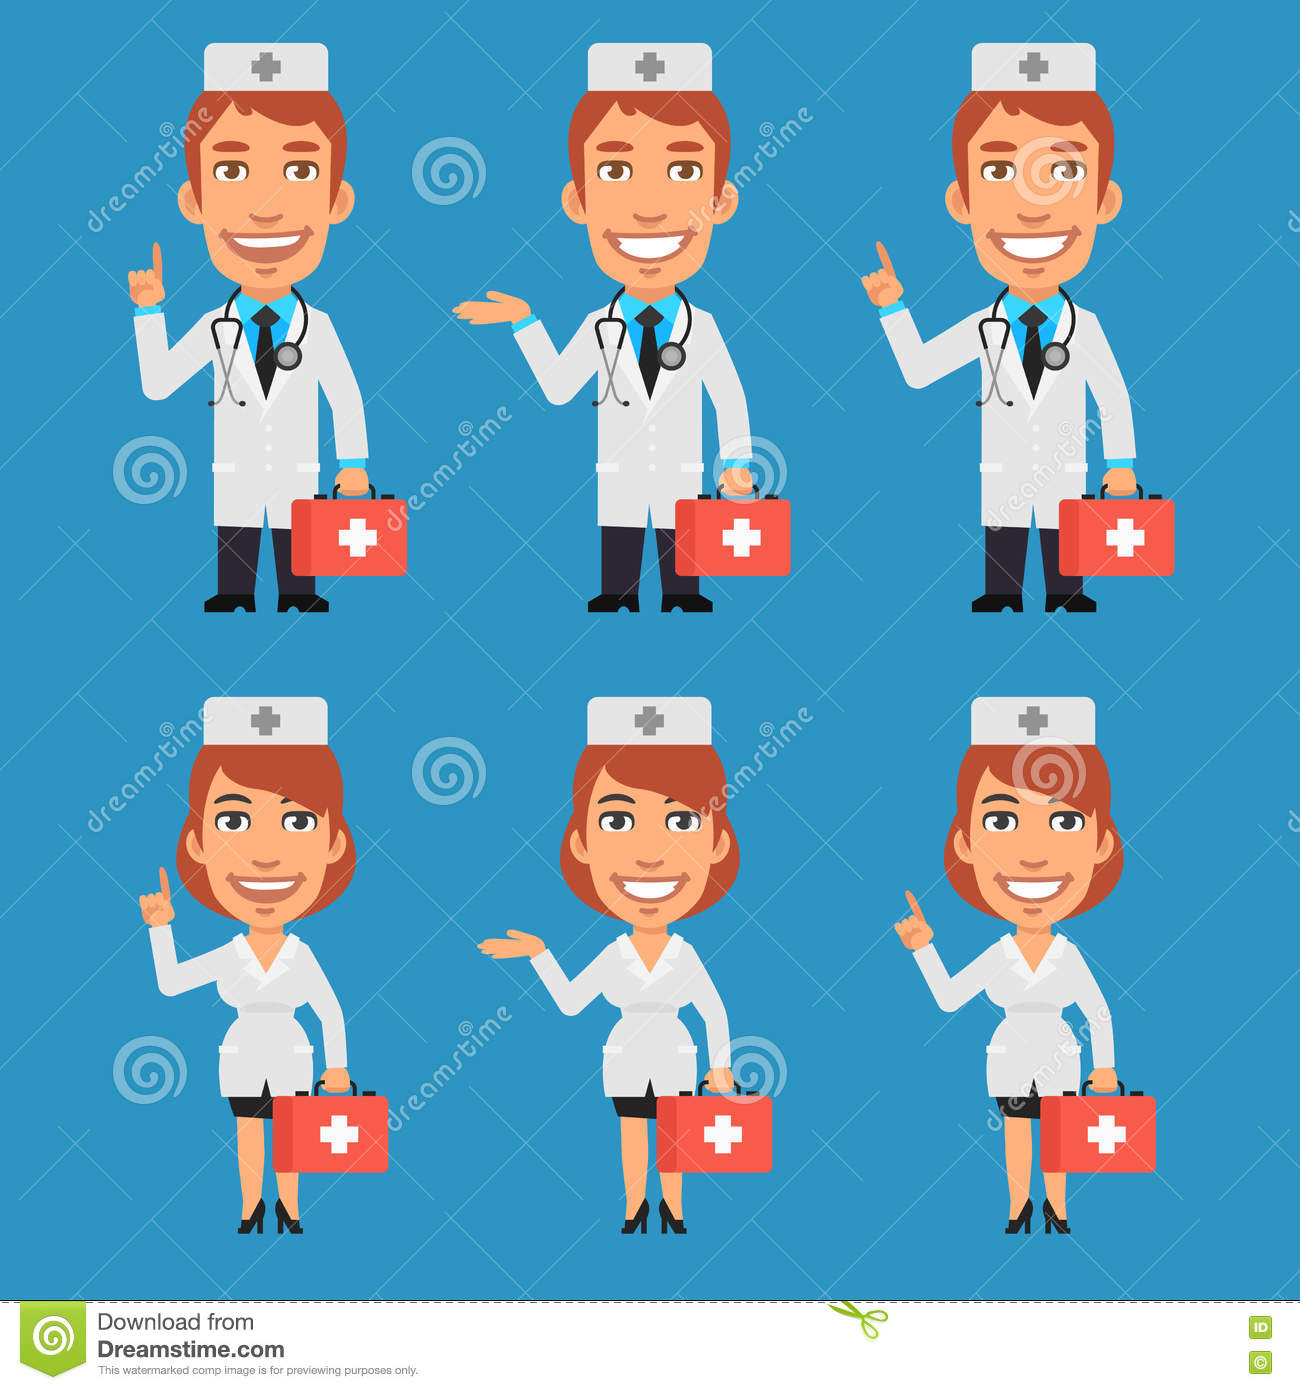 Doctor and Nurse Holding Suitcase and Points